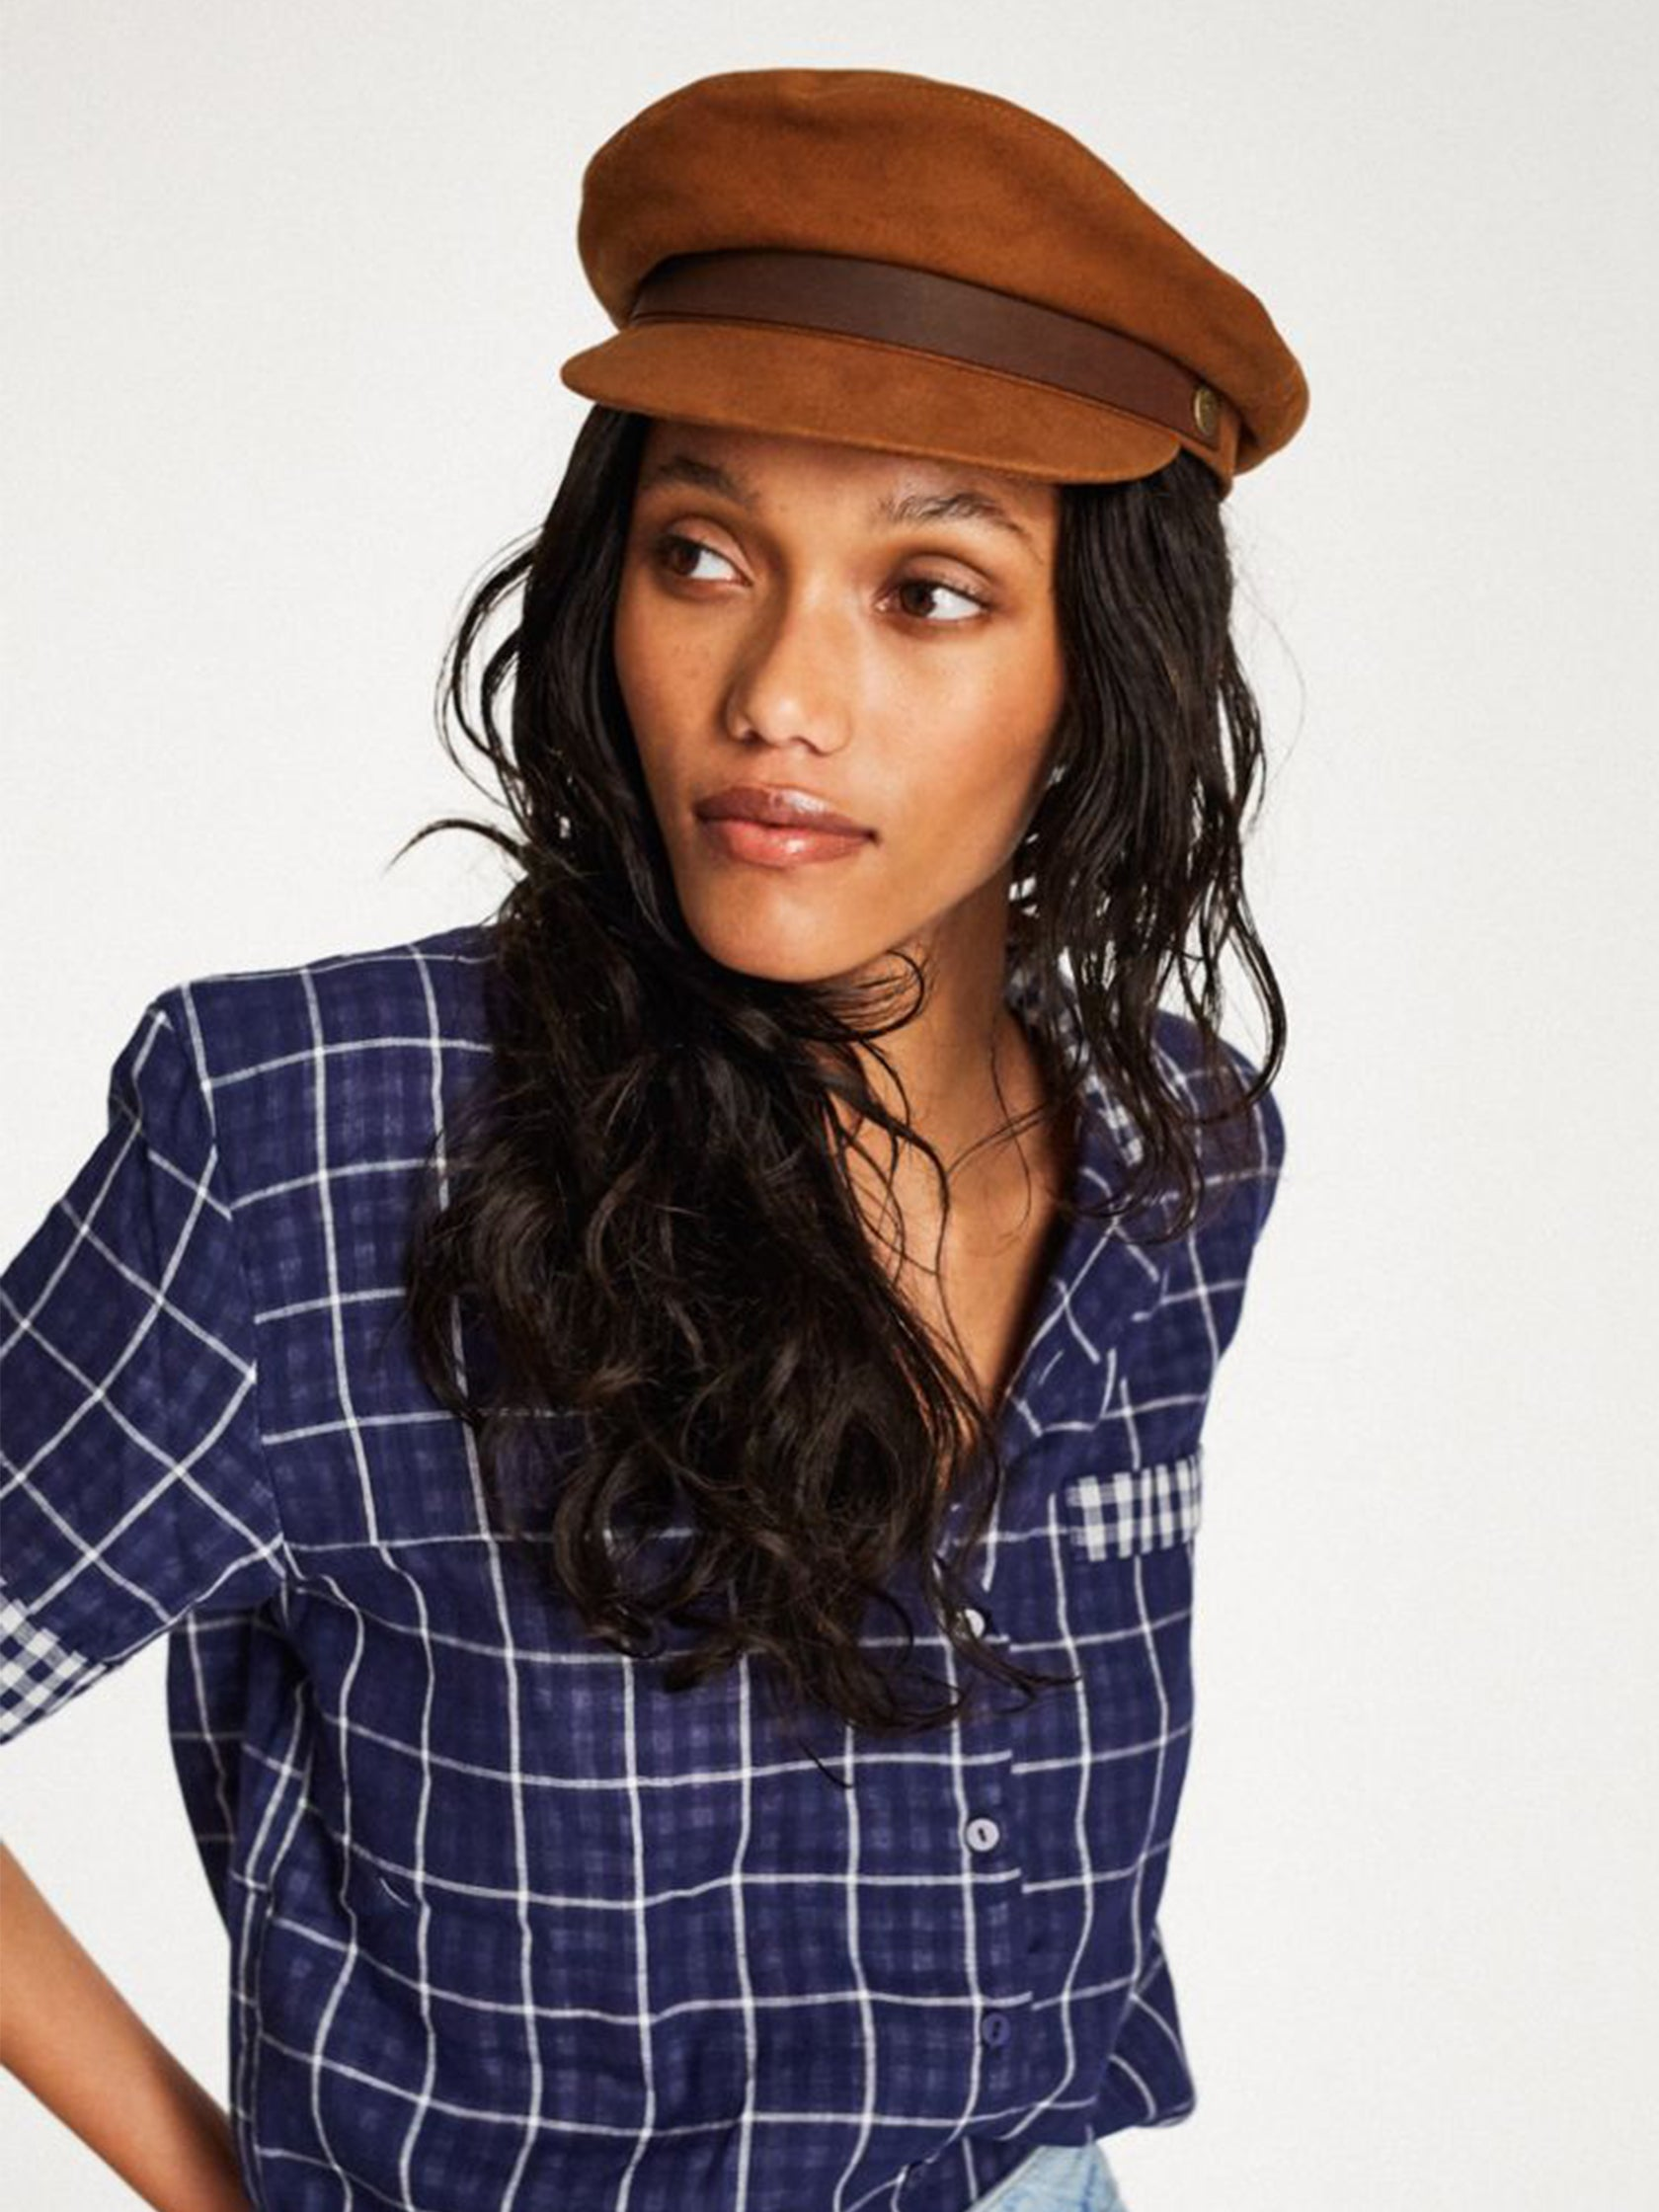 5eb1001a6a7ec Girl wearing a hat rental from Brixton called Fiddler Cap